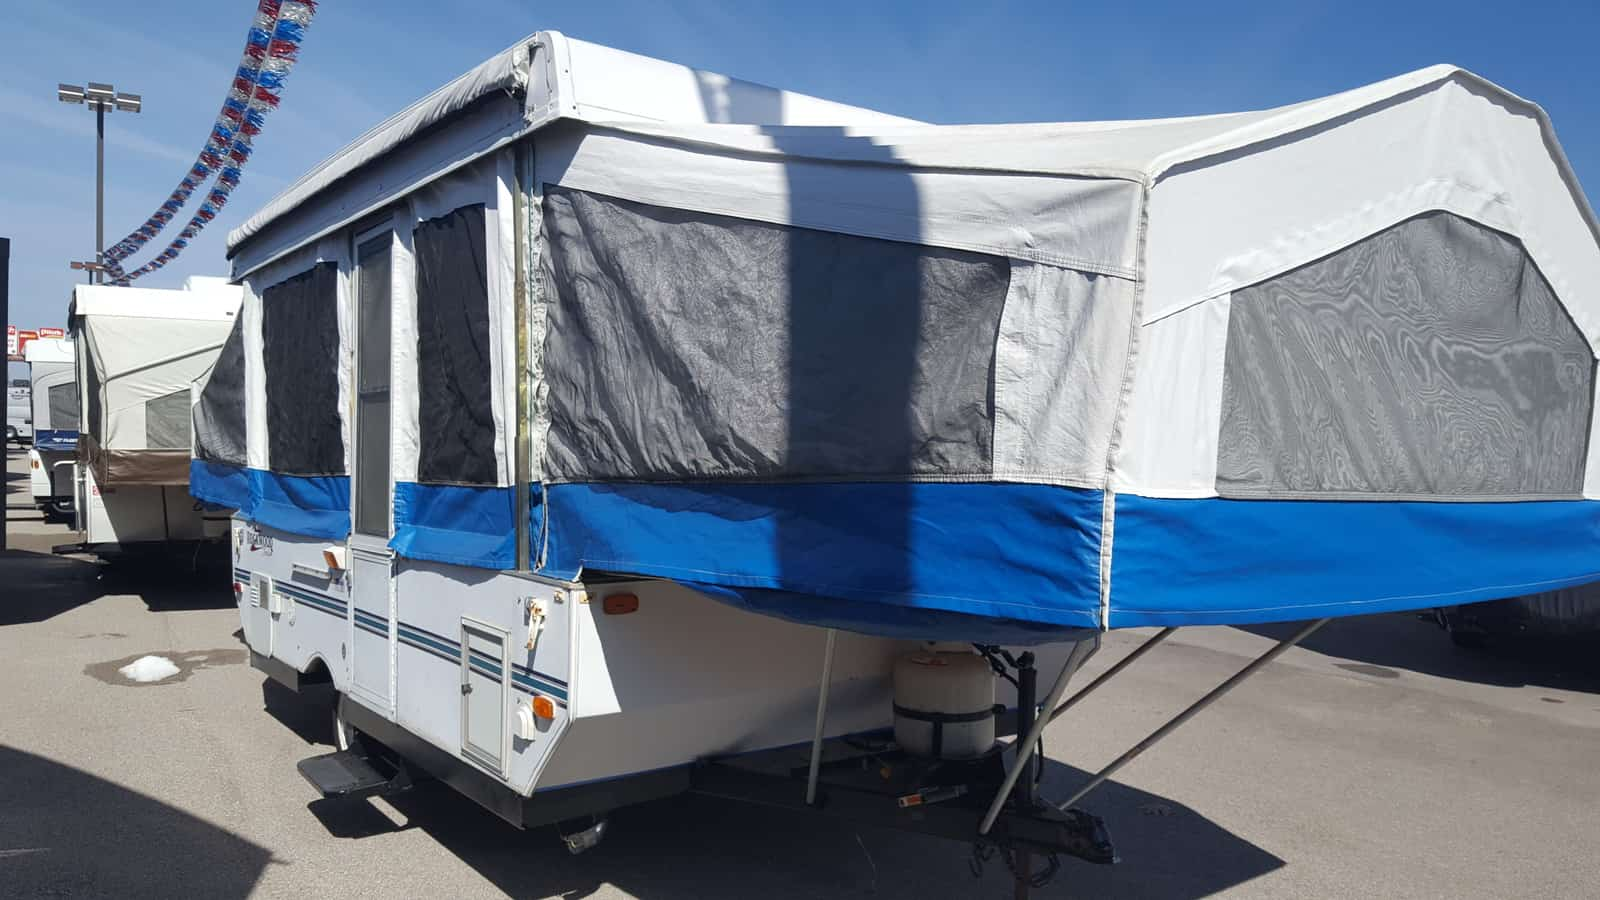 USED 2000 Forest River ROCKWOOD 2280 - American RV